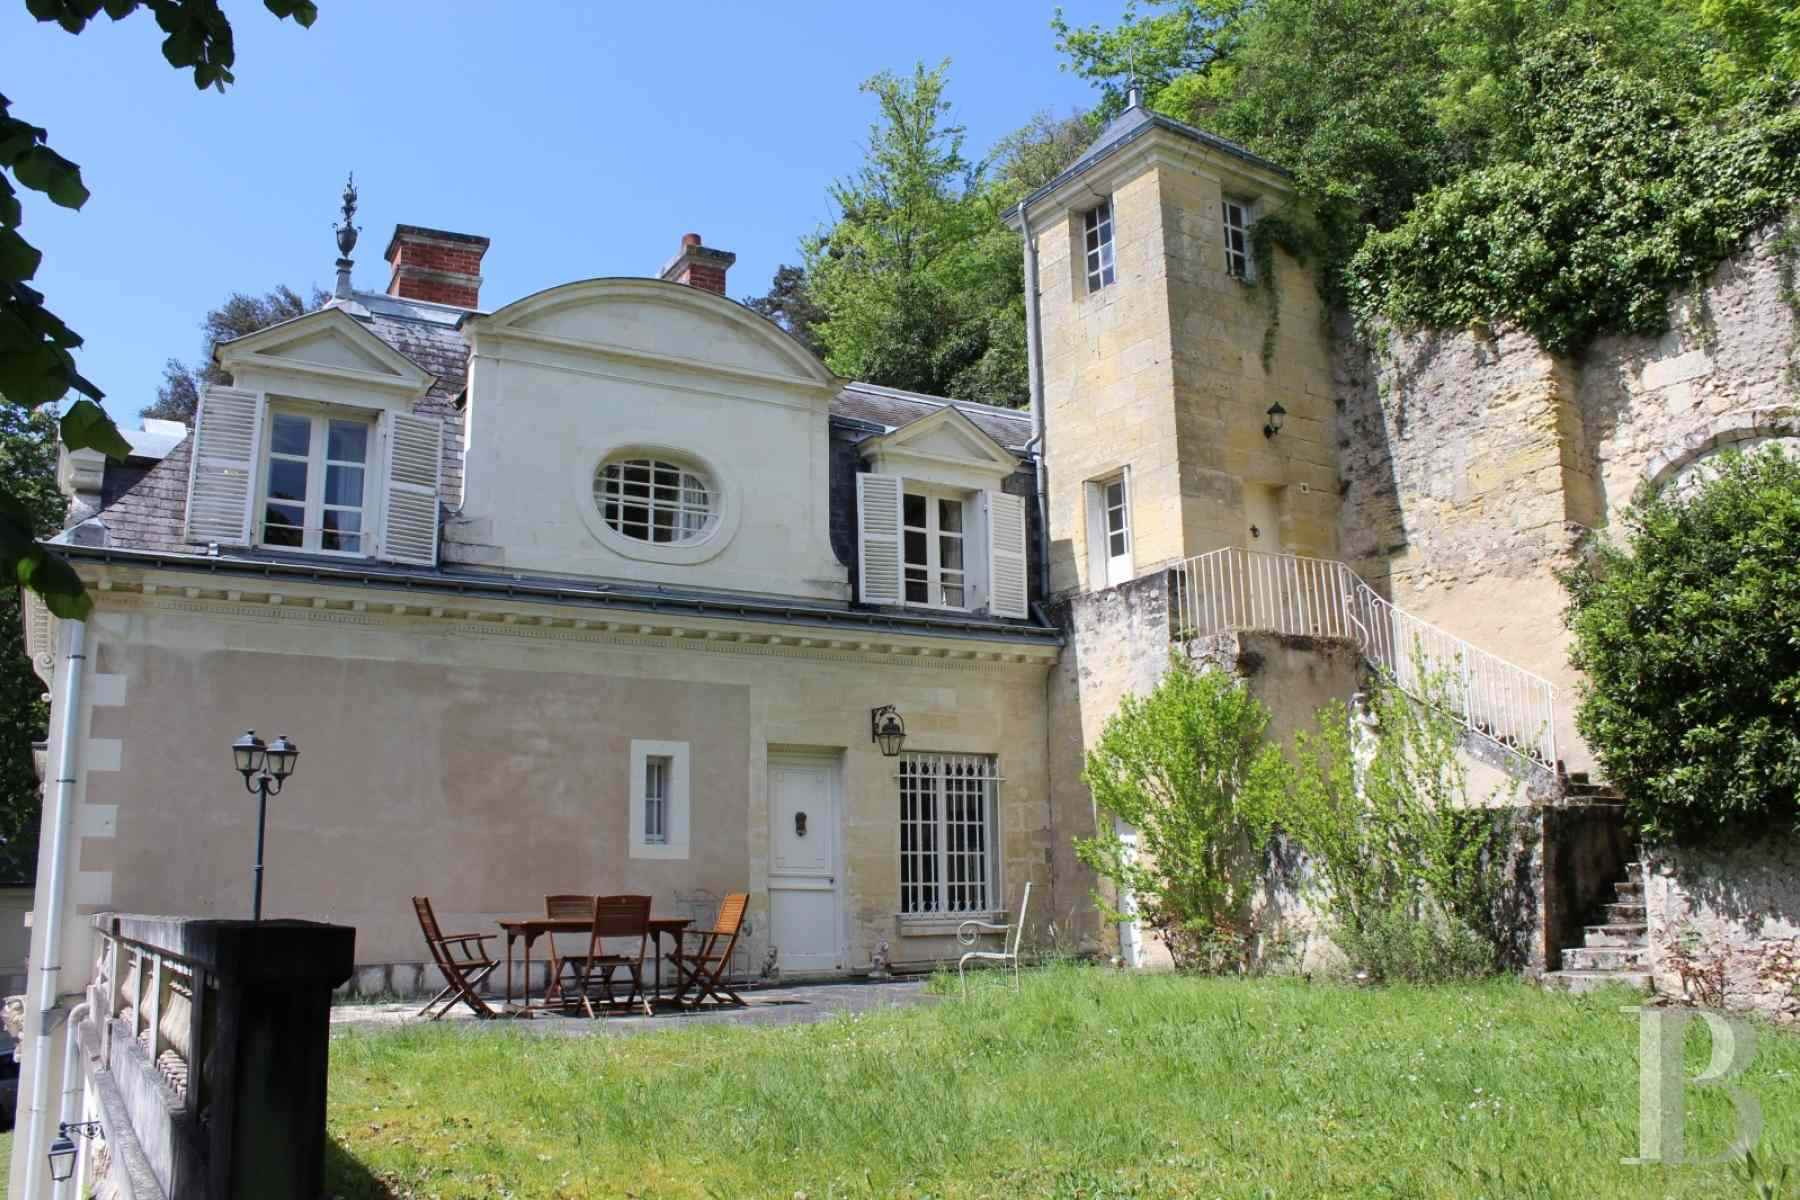 France mansions for sale center val de loire tours listed - 2 zoom